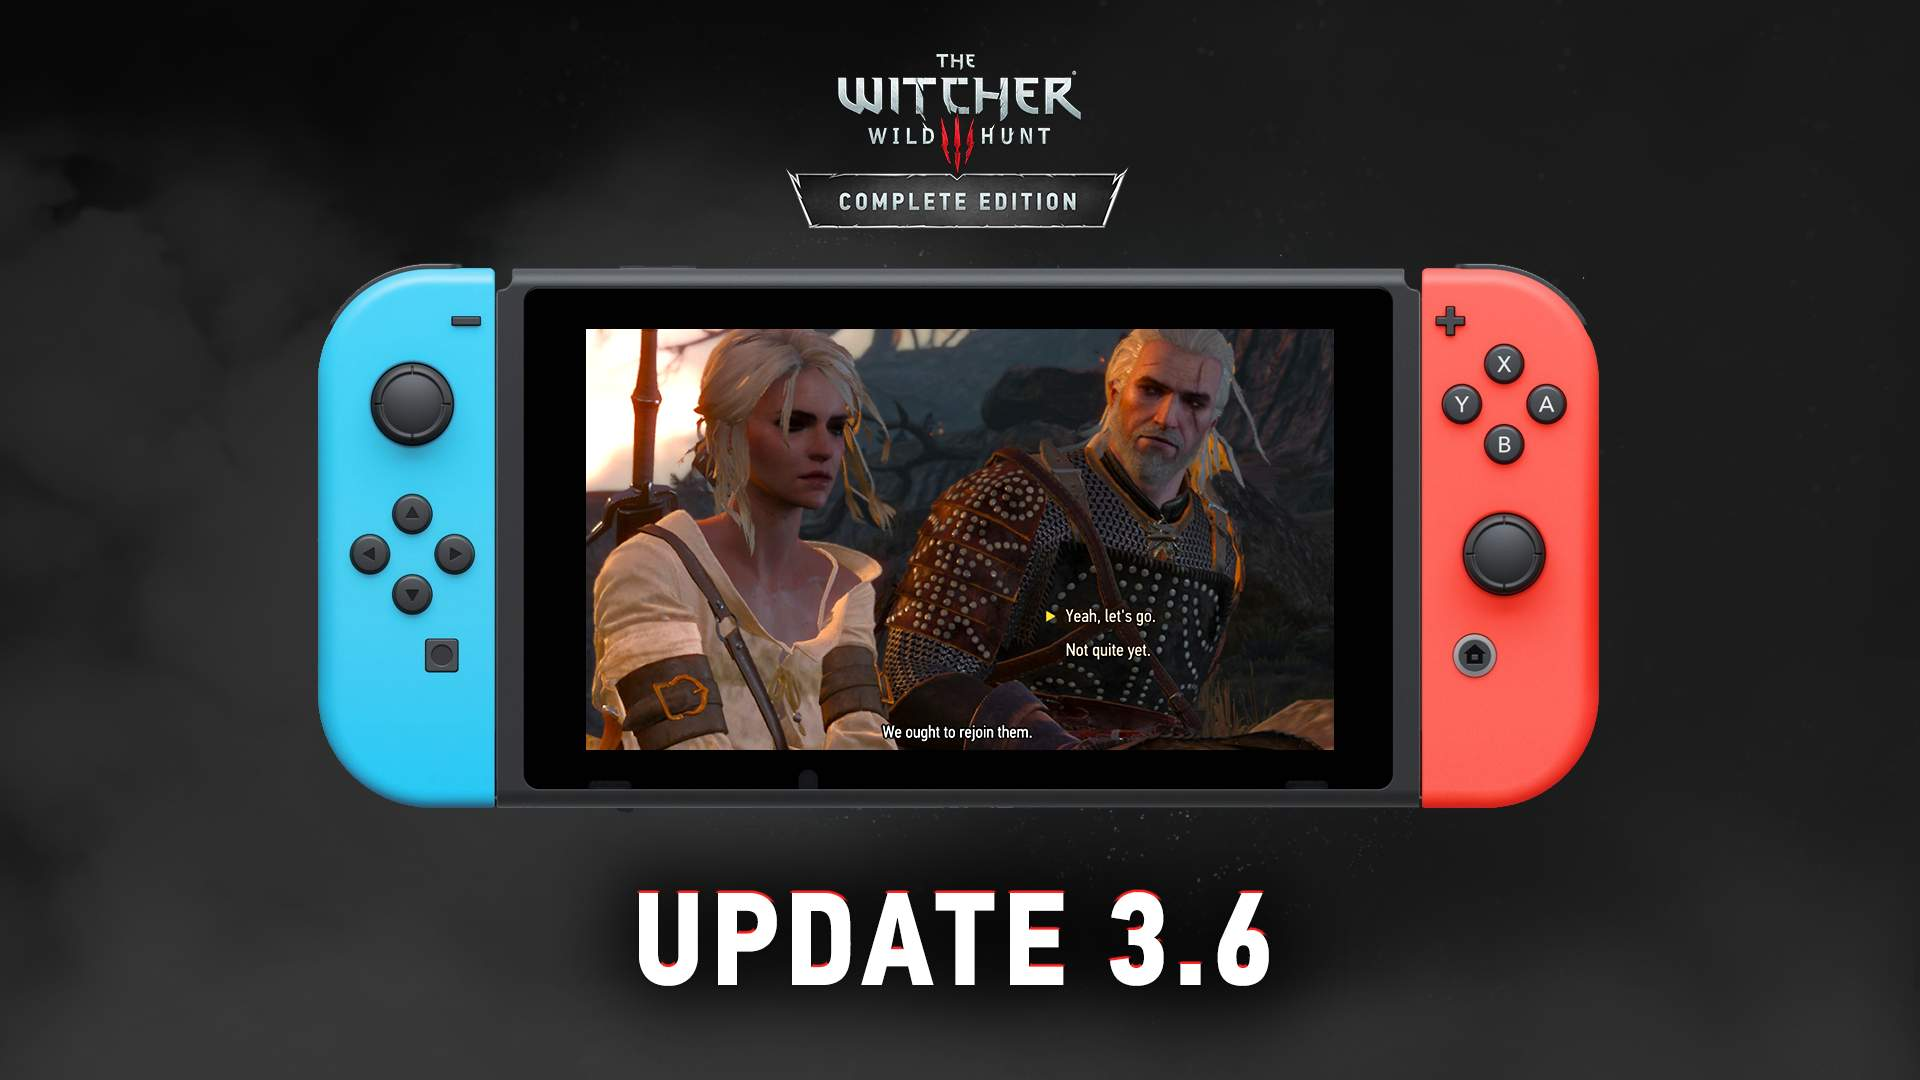 The Witcher 3 Switch update adds PC cross-save and improved graphics